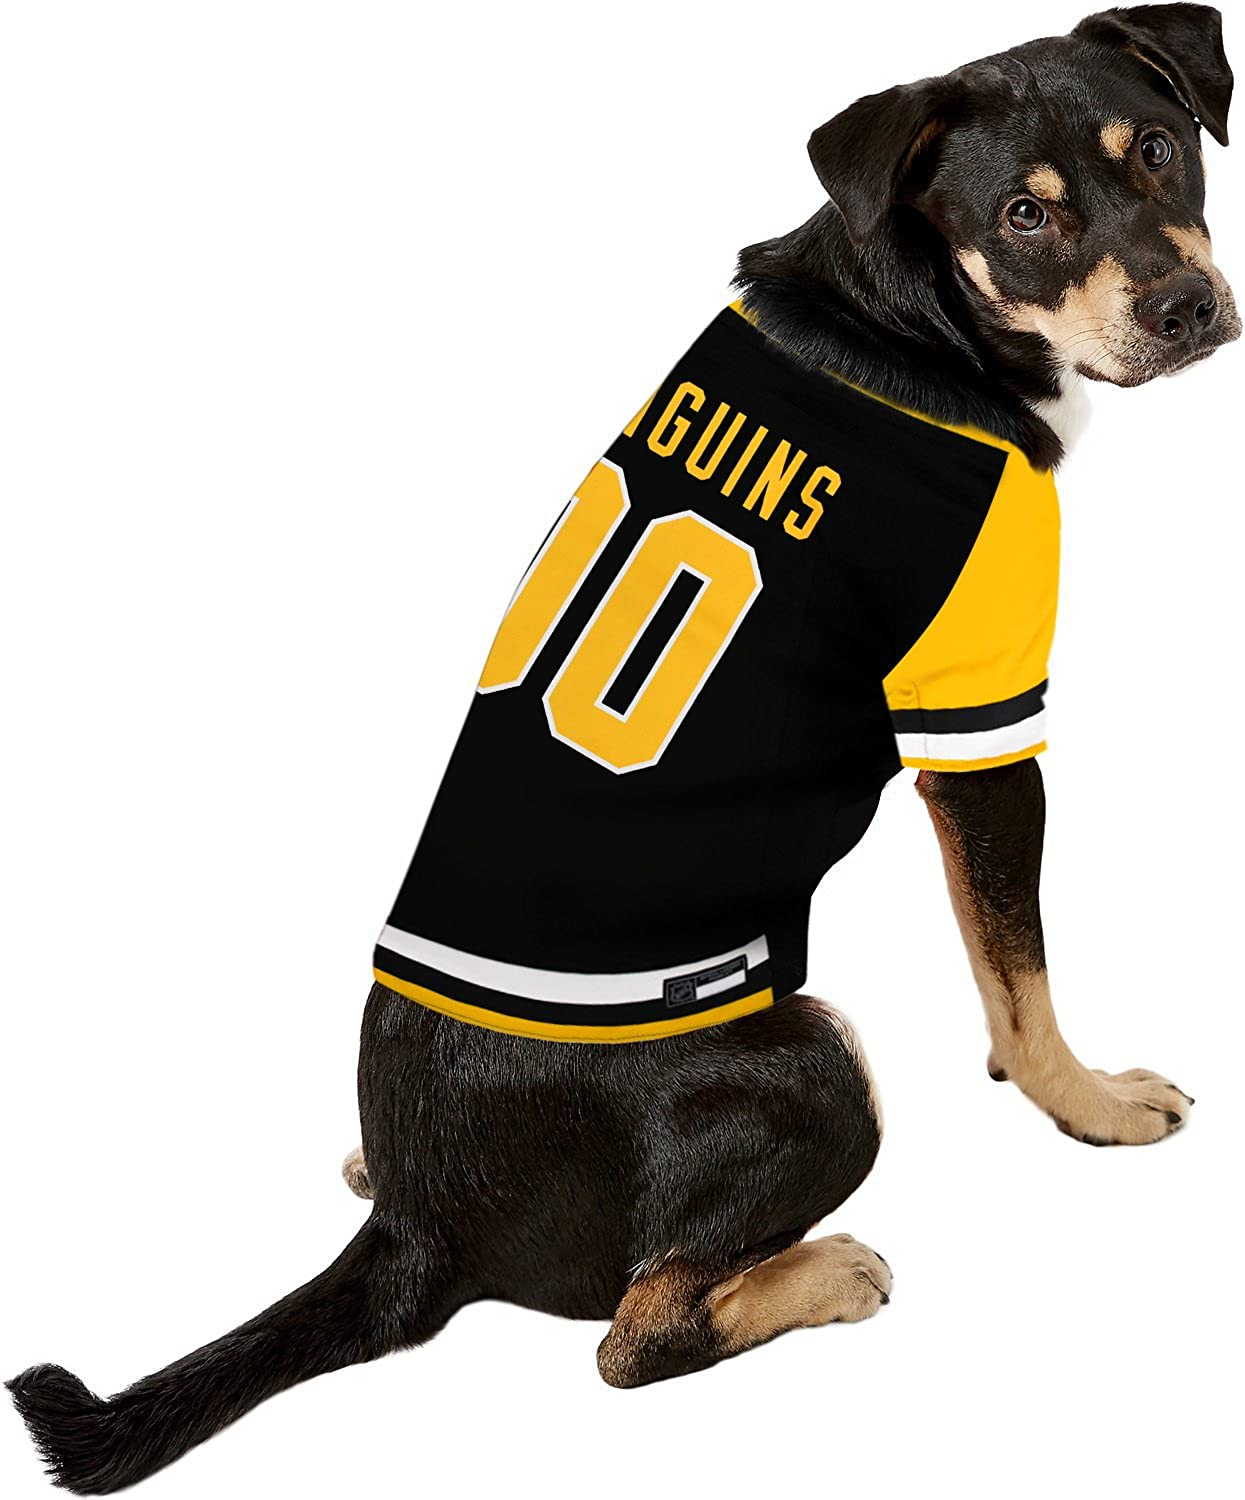 Large NHL Anaheim Ducks Jersey for Dogs /& Cats Let Your Pet Be A Real NHL Fan!